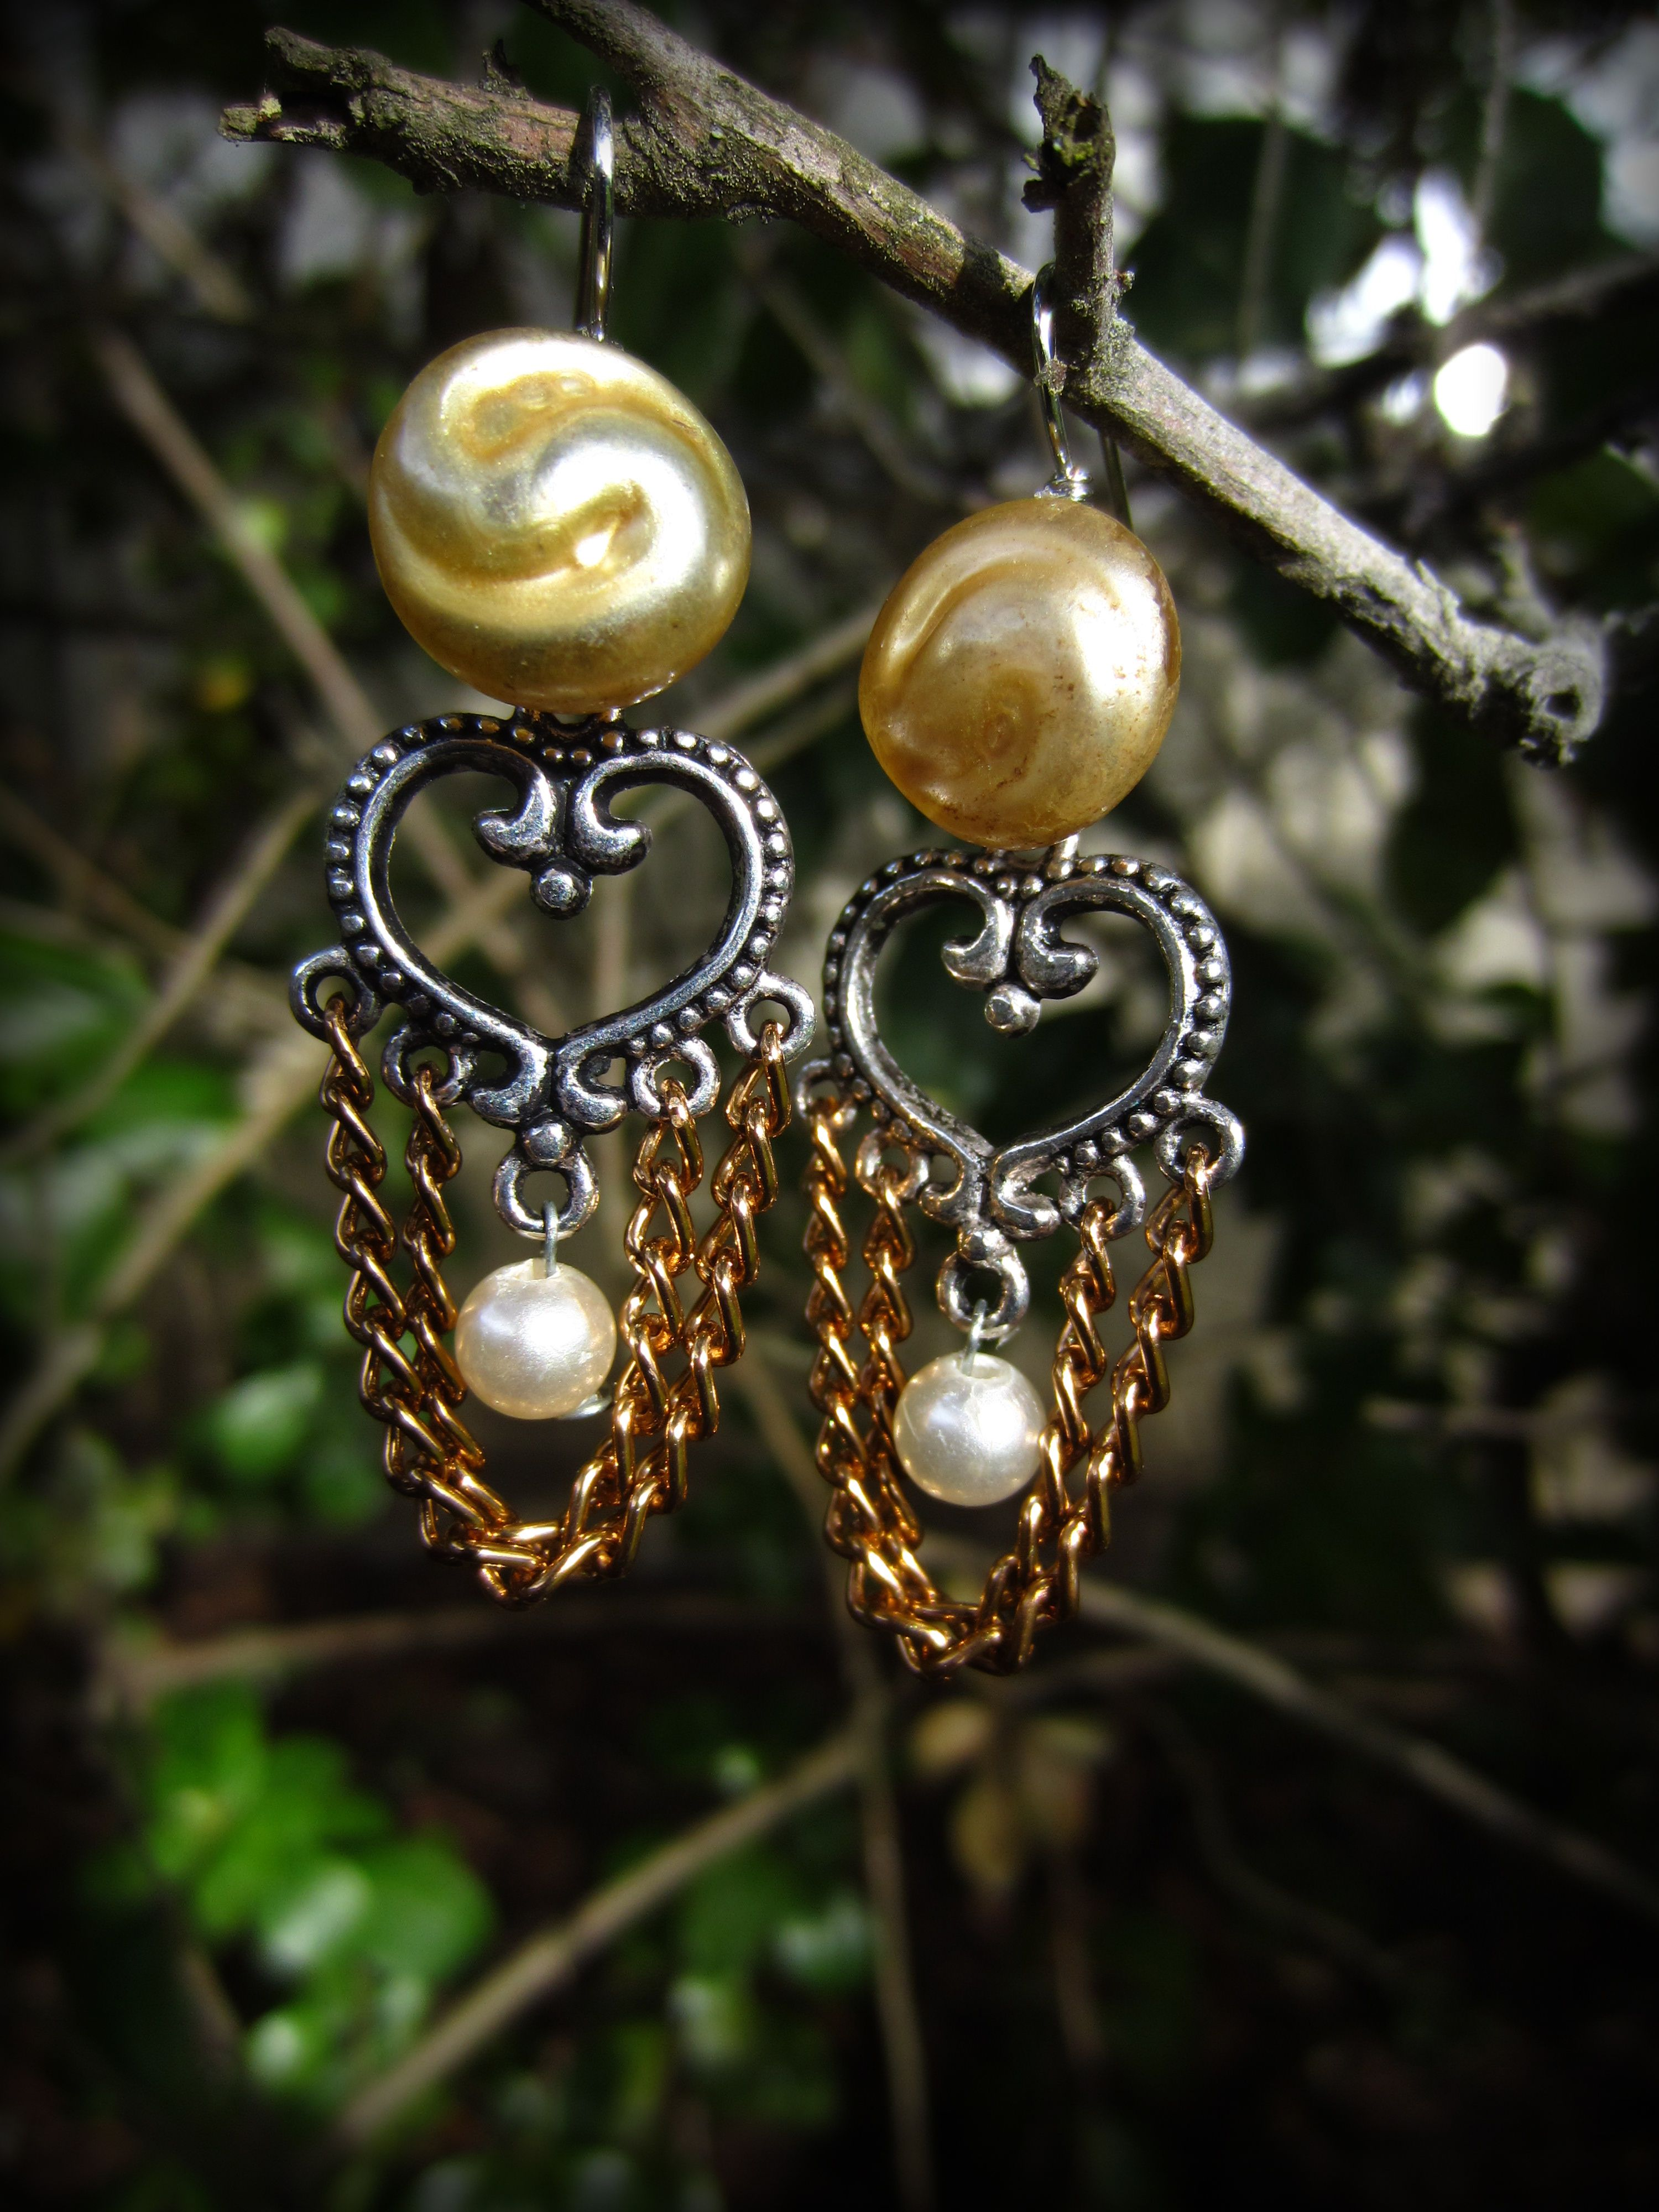 http://www.etsy.com/listing/95612817/antique-gold-button-earrings-with